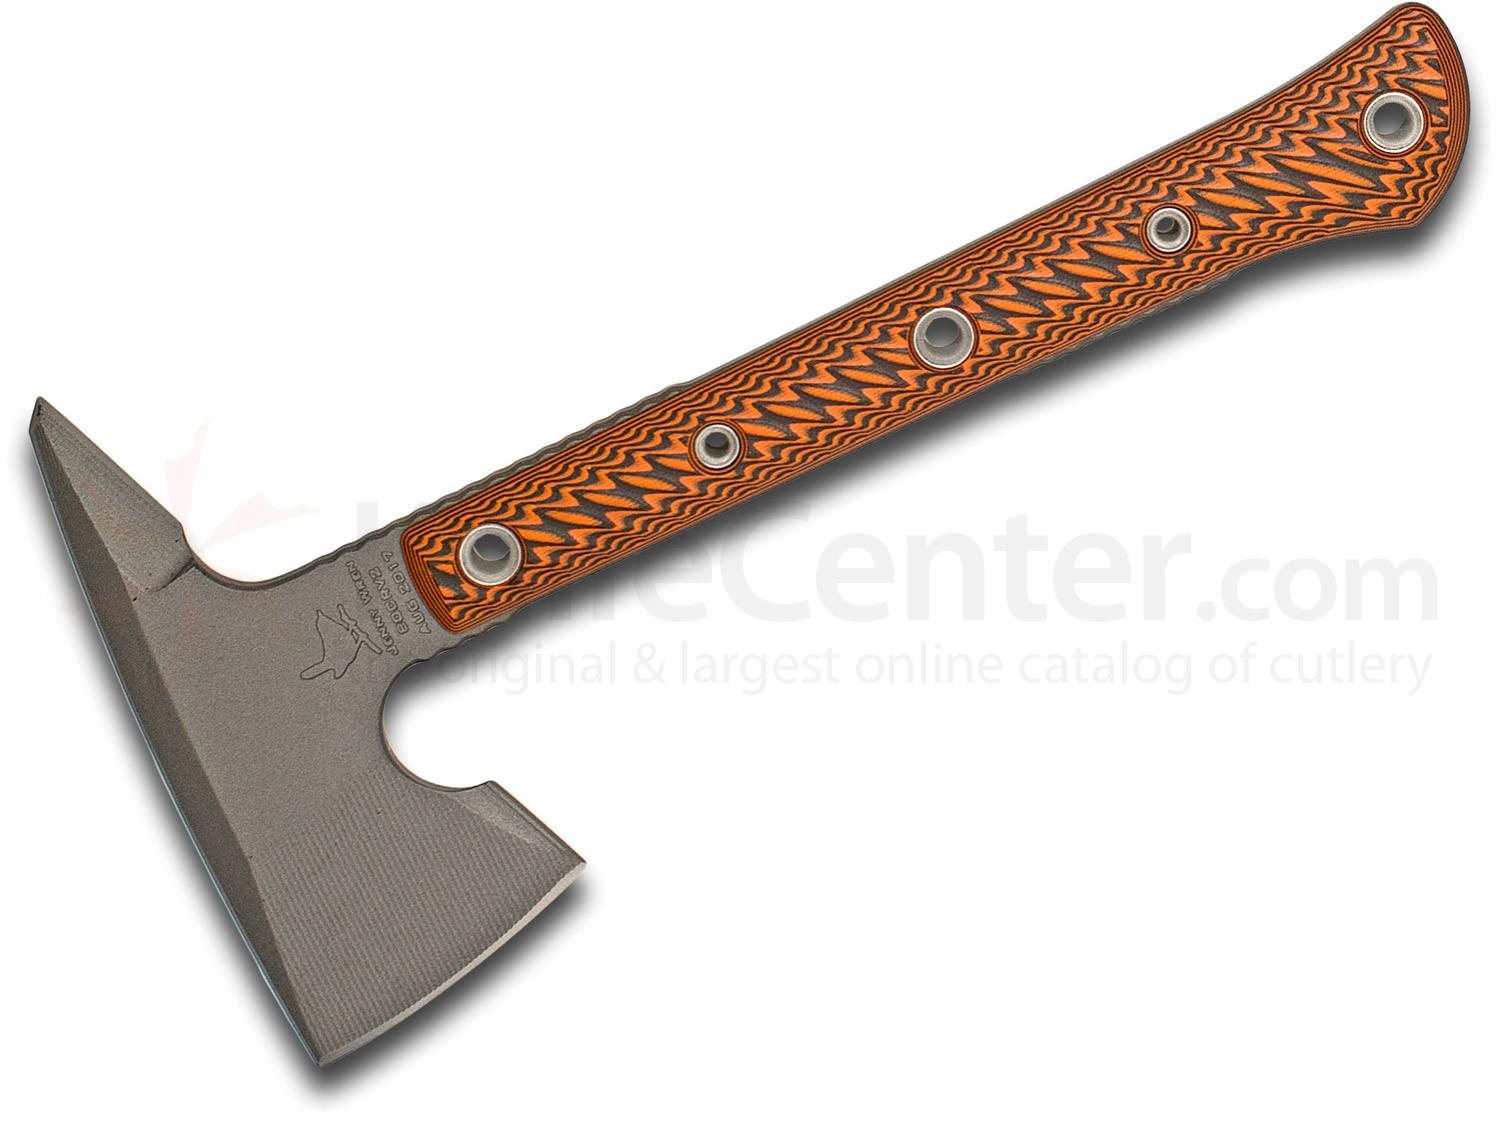 RMJ Tactical Jenny Wren Tomahawk 11.5 inch Overall, Black/Orange G10 Handle, Kydex Sheath with MOC Straps - KnifeCenter Exclusive